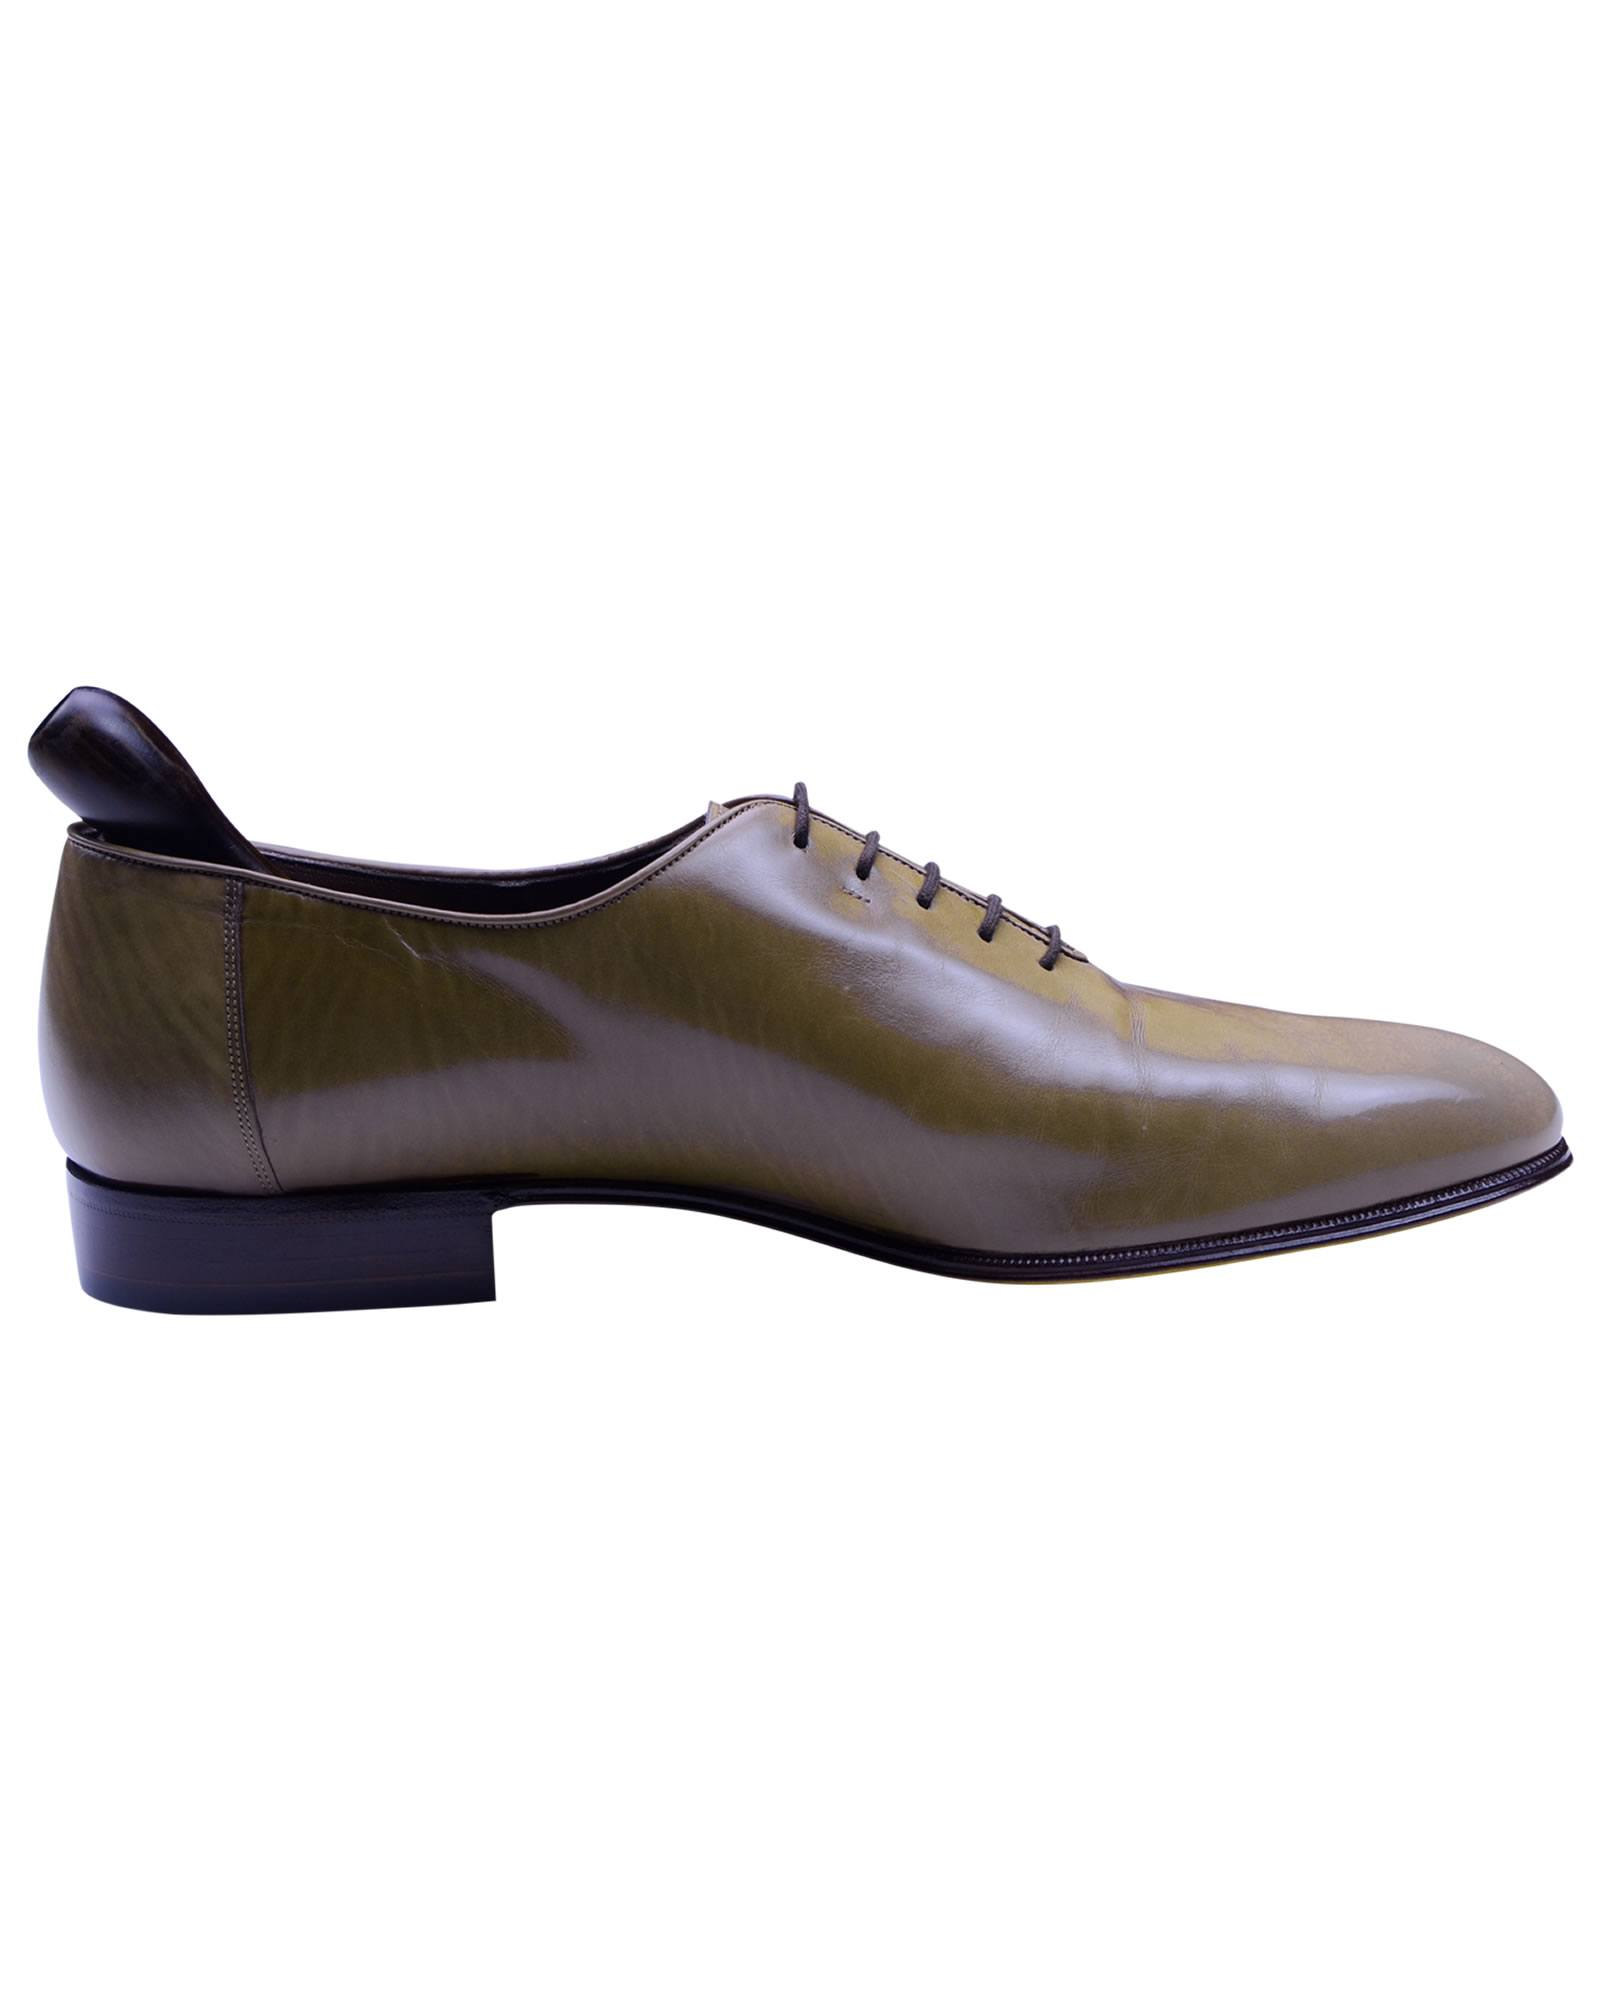 Bally Designer Grey Brown Leather Men's oxford shoes